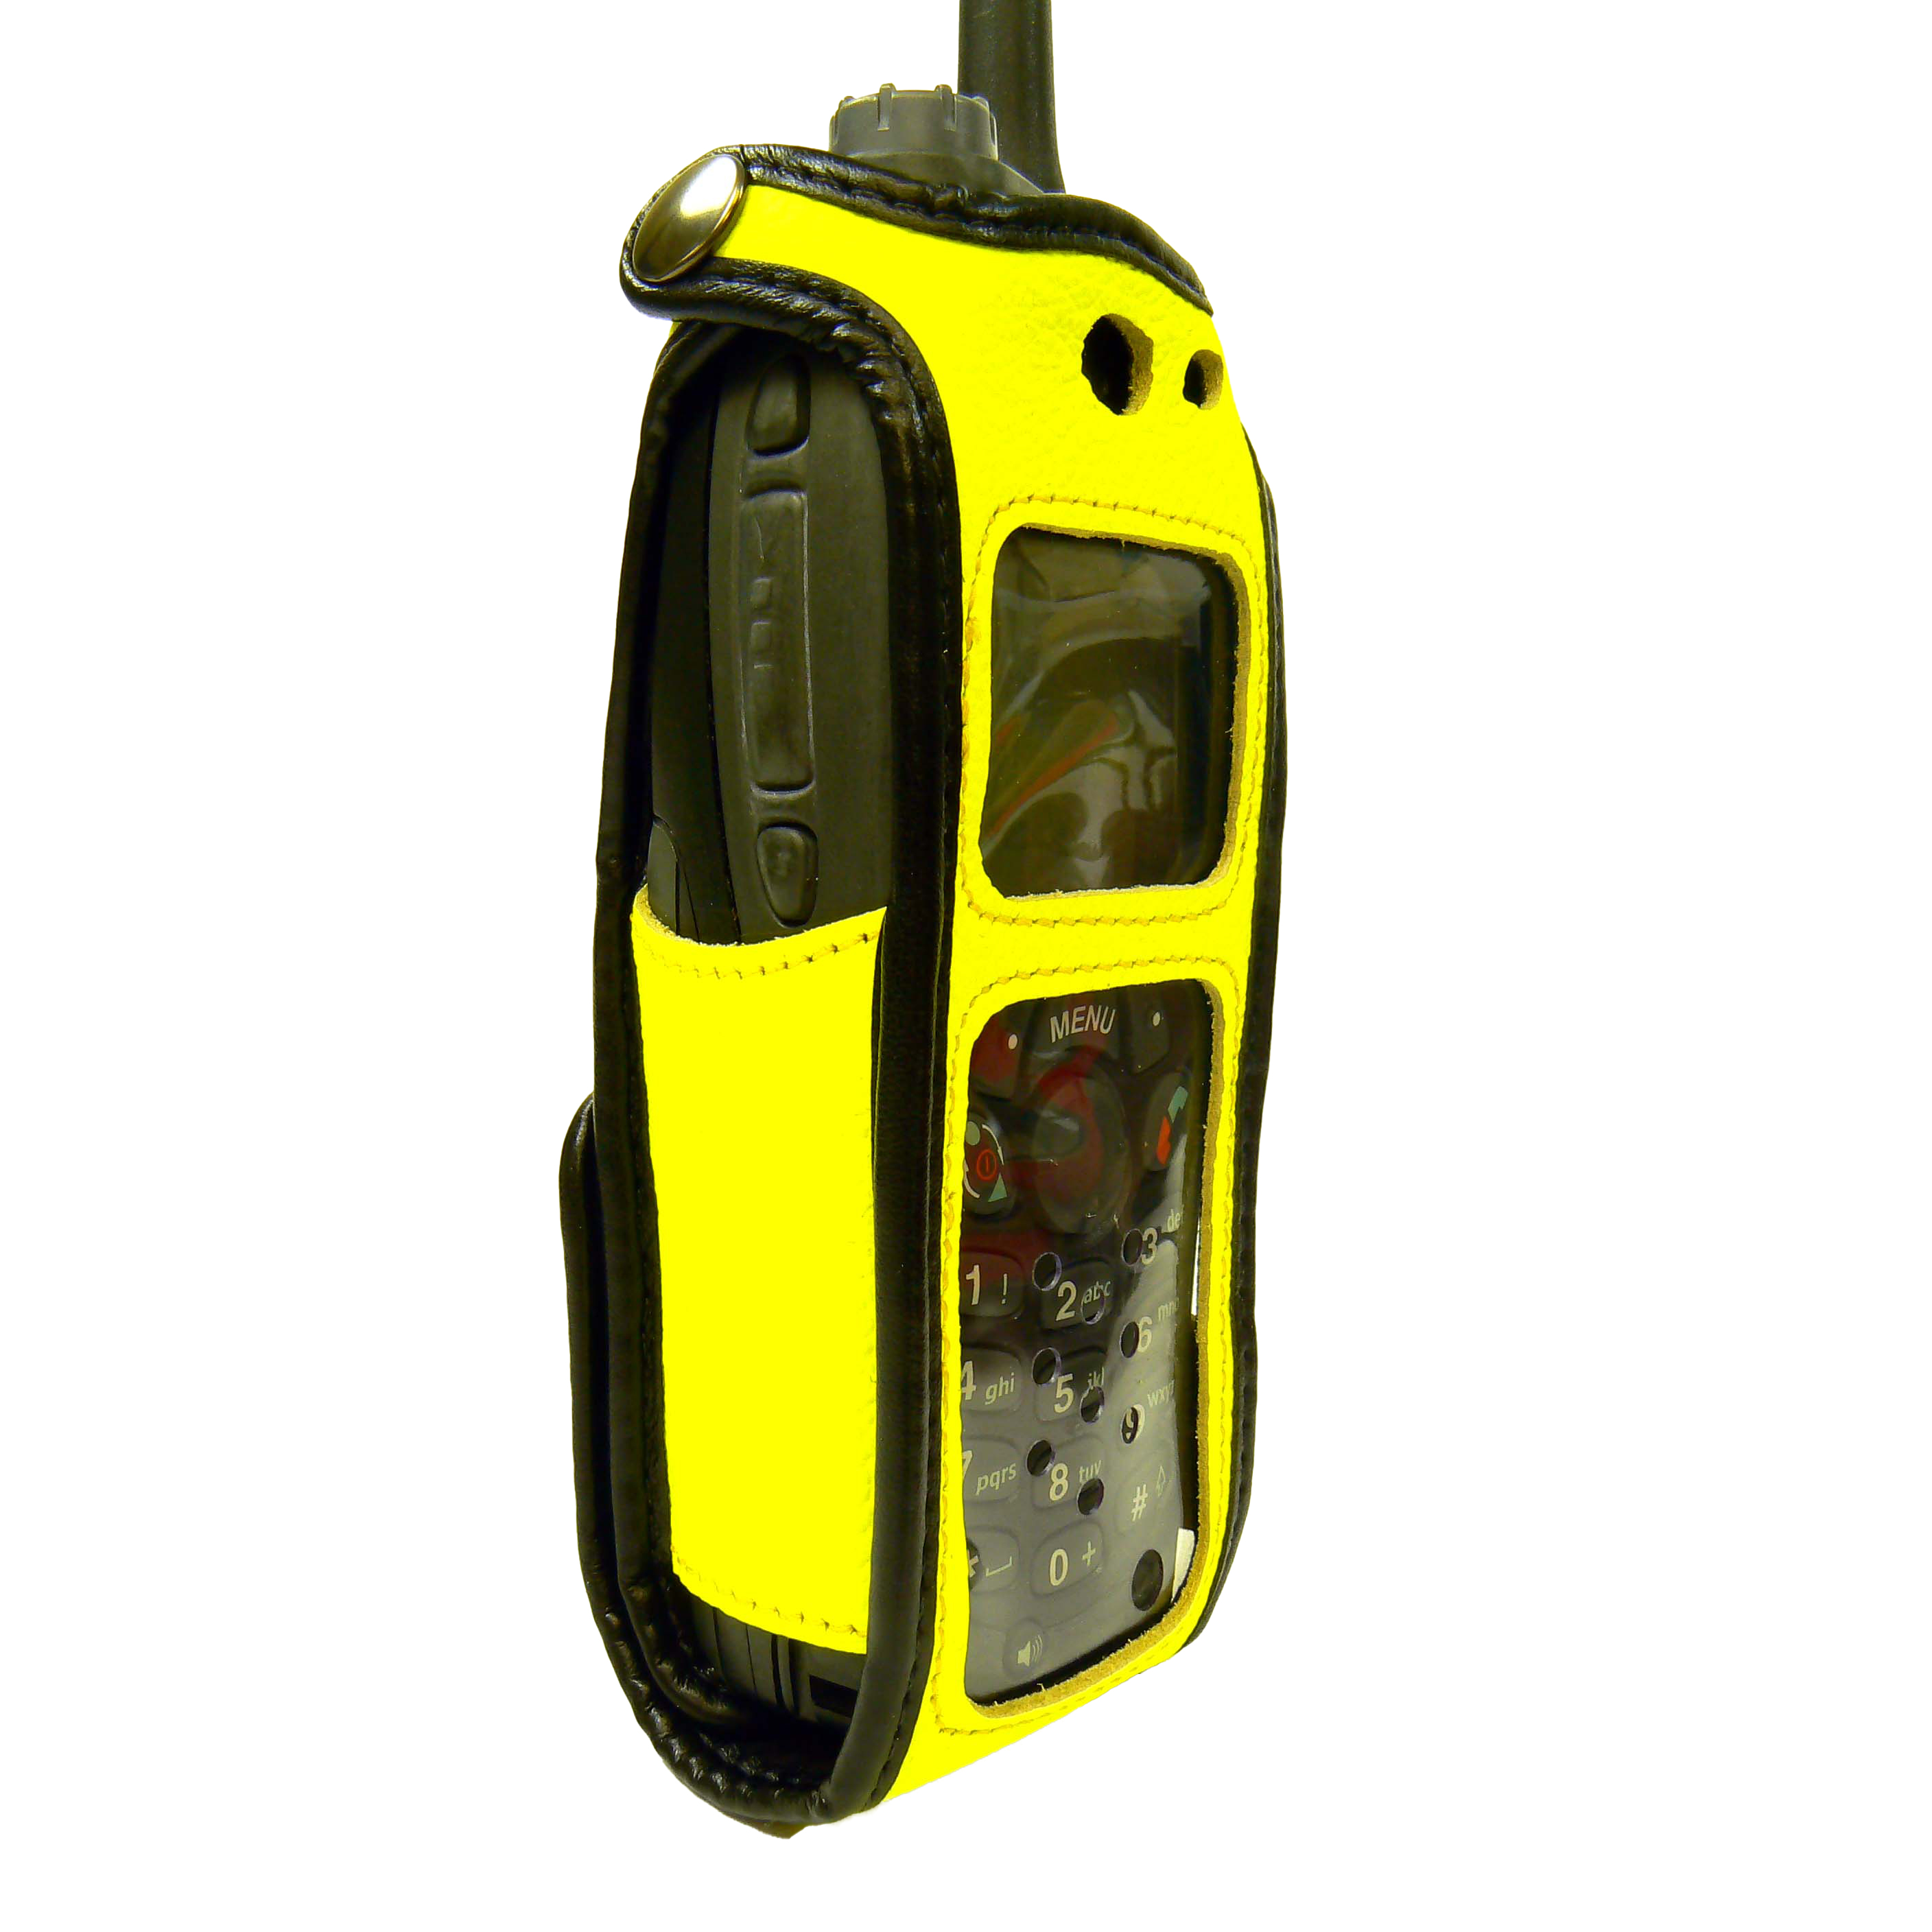 Motorola MTH650 Tetra Hi-Vis Yellow leather radio case with Click-On